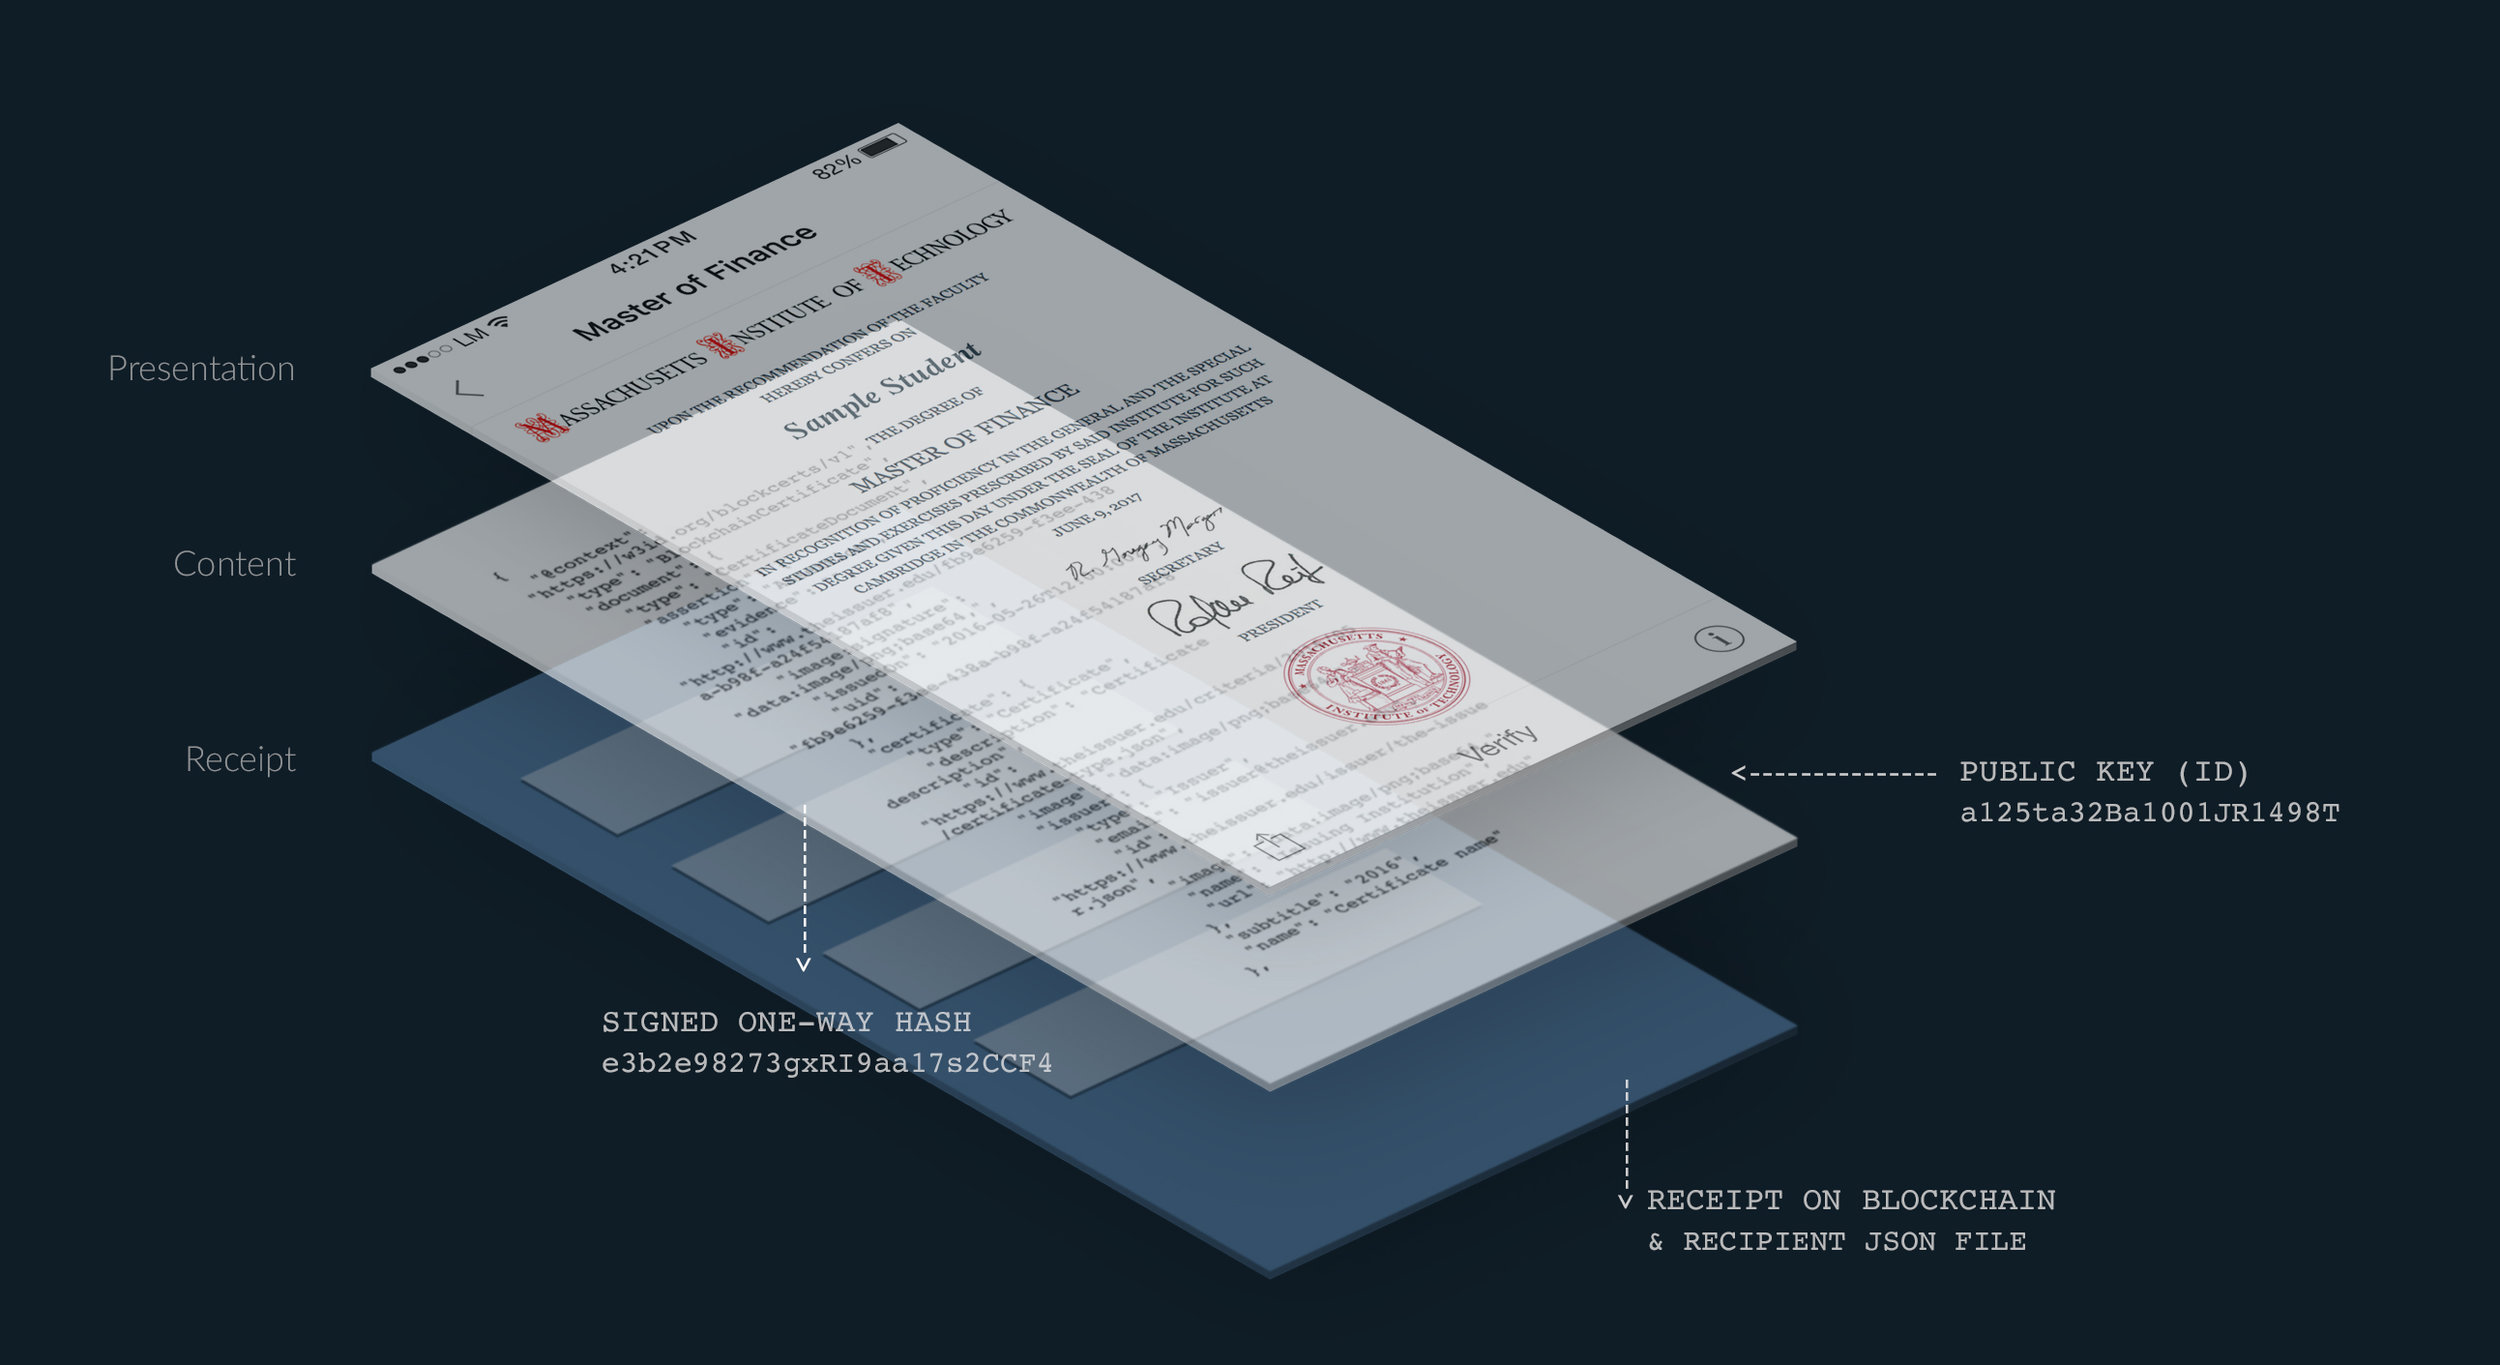 One of the key benefits for students is that they can prove to employers or other schools that they have an MIT diploma. The third party can verify the authenticity via a portal. - Image: MIT